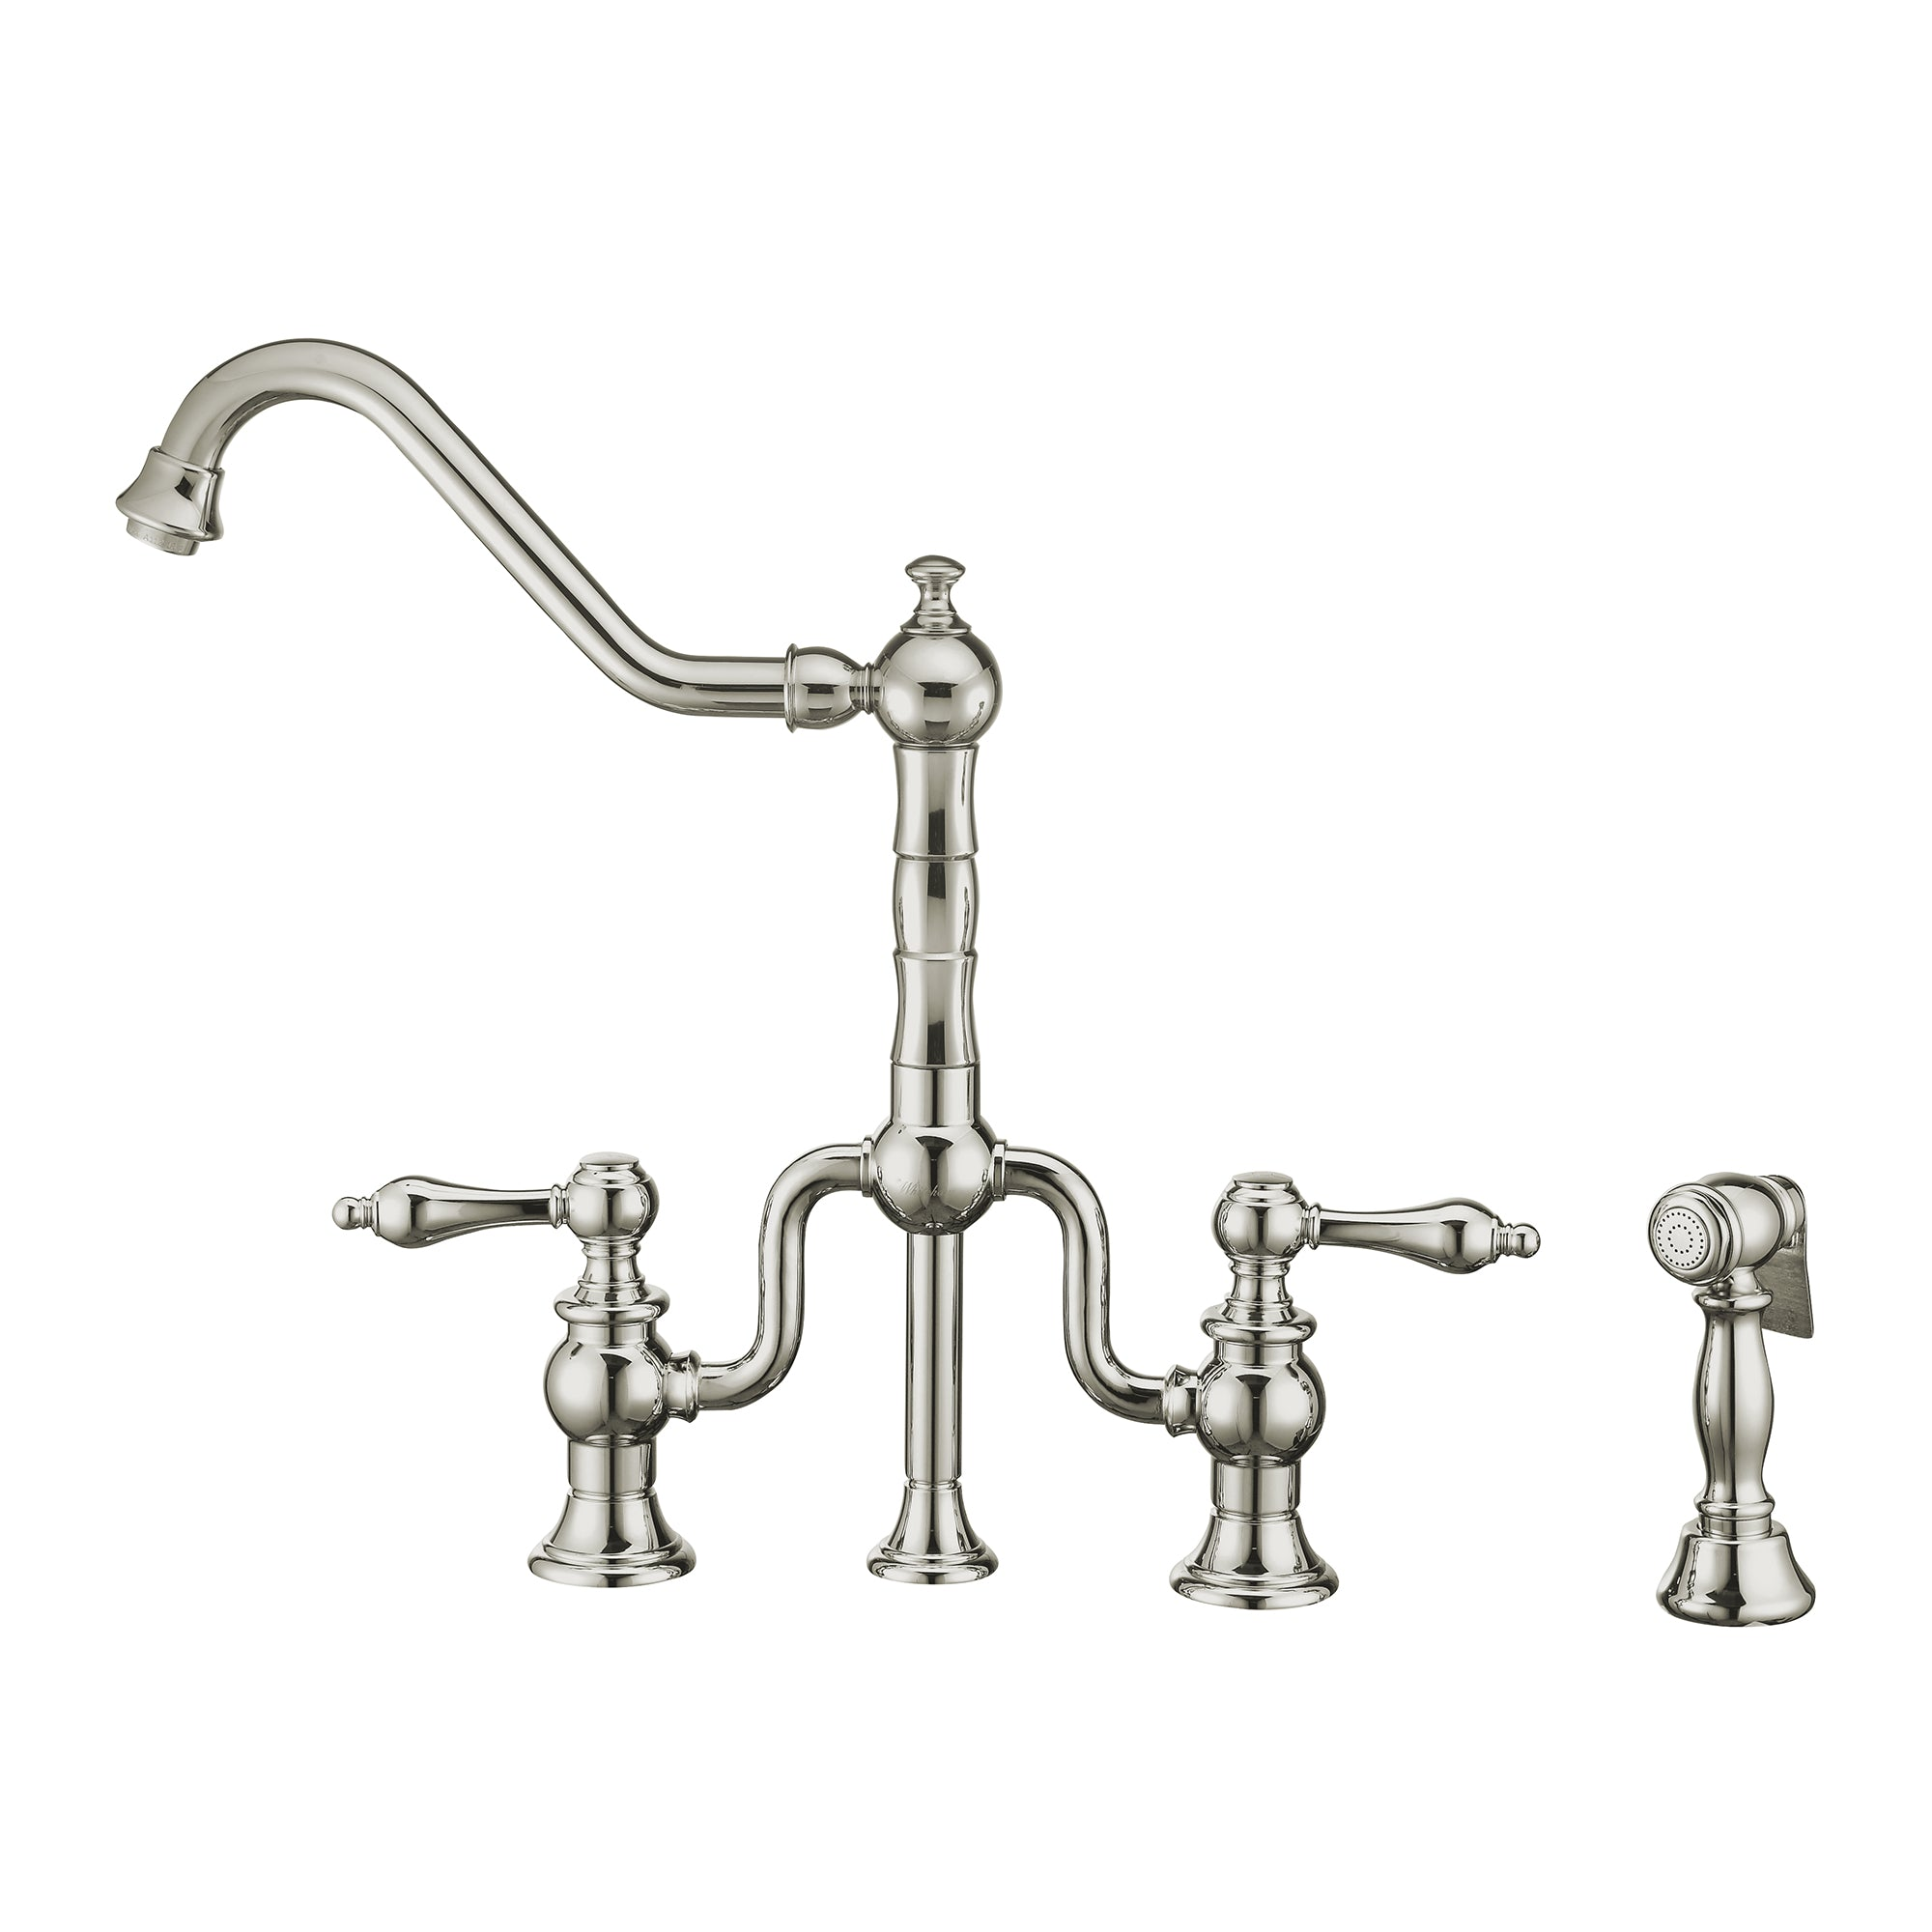 Twisthaus Plus Bridge Faucet with Long Traditional Swivel Spout, Lever Handles and Solid Brass Side Spray